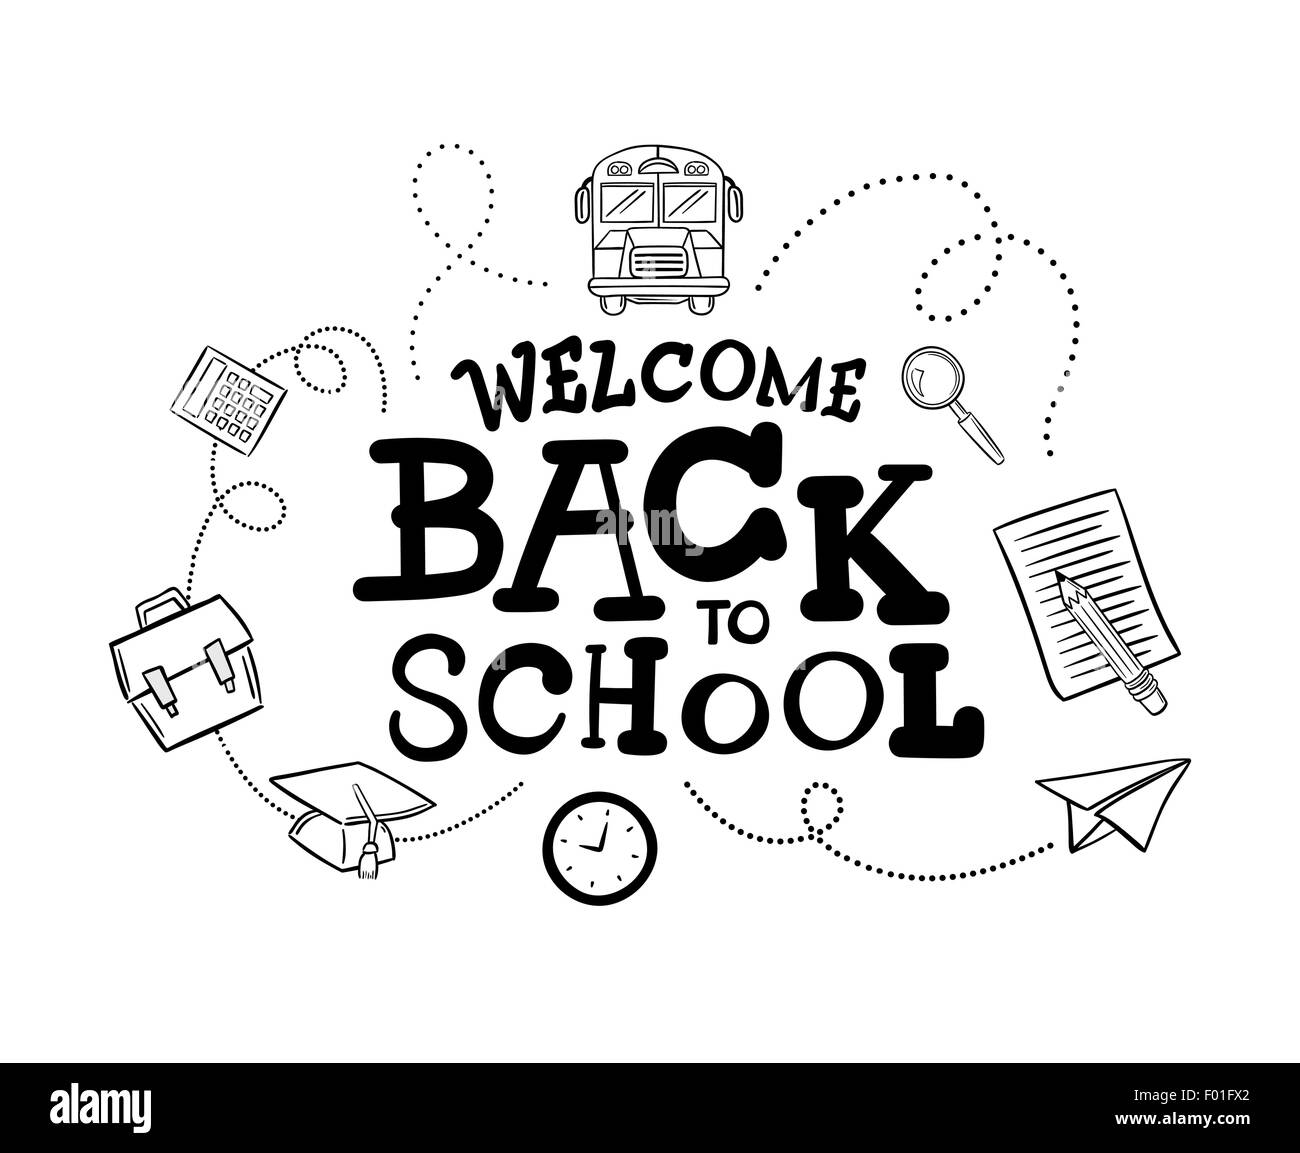 welcome back black and white stock photos & images - alamy